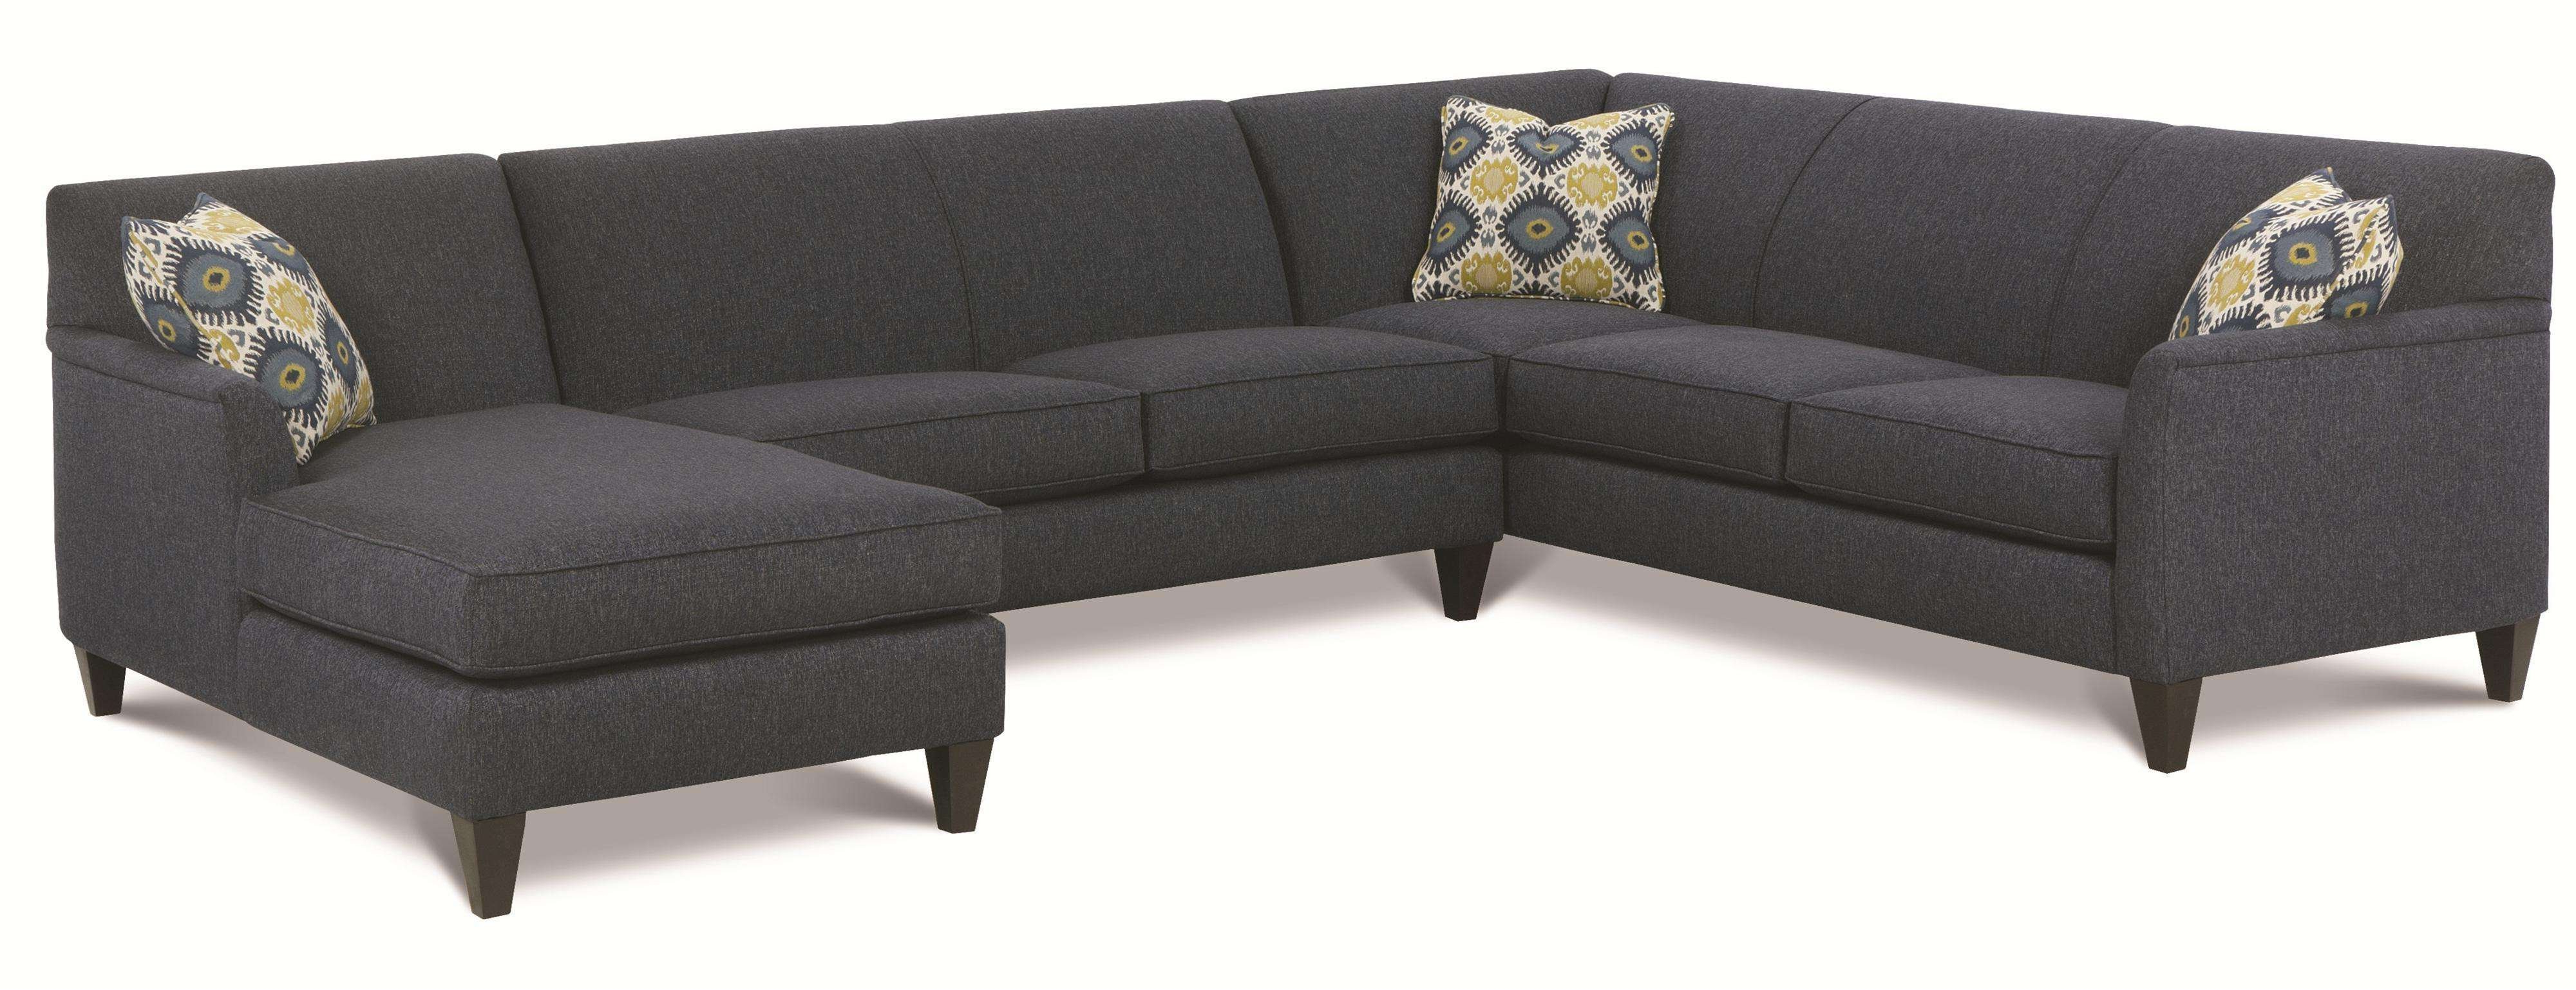 Delano 2 Piece Sectionals With Laf Oversized Chaise Regarding Trendy Simple 25 2 Piece Sectionals With Chaise Awesome (Gallery 20 of 20)